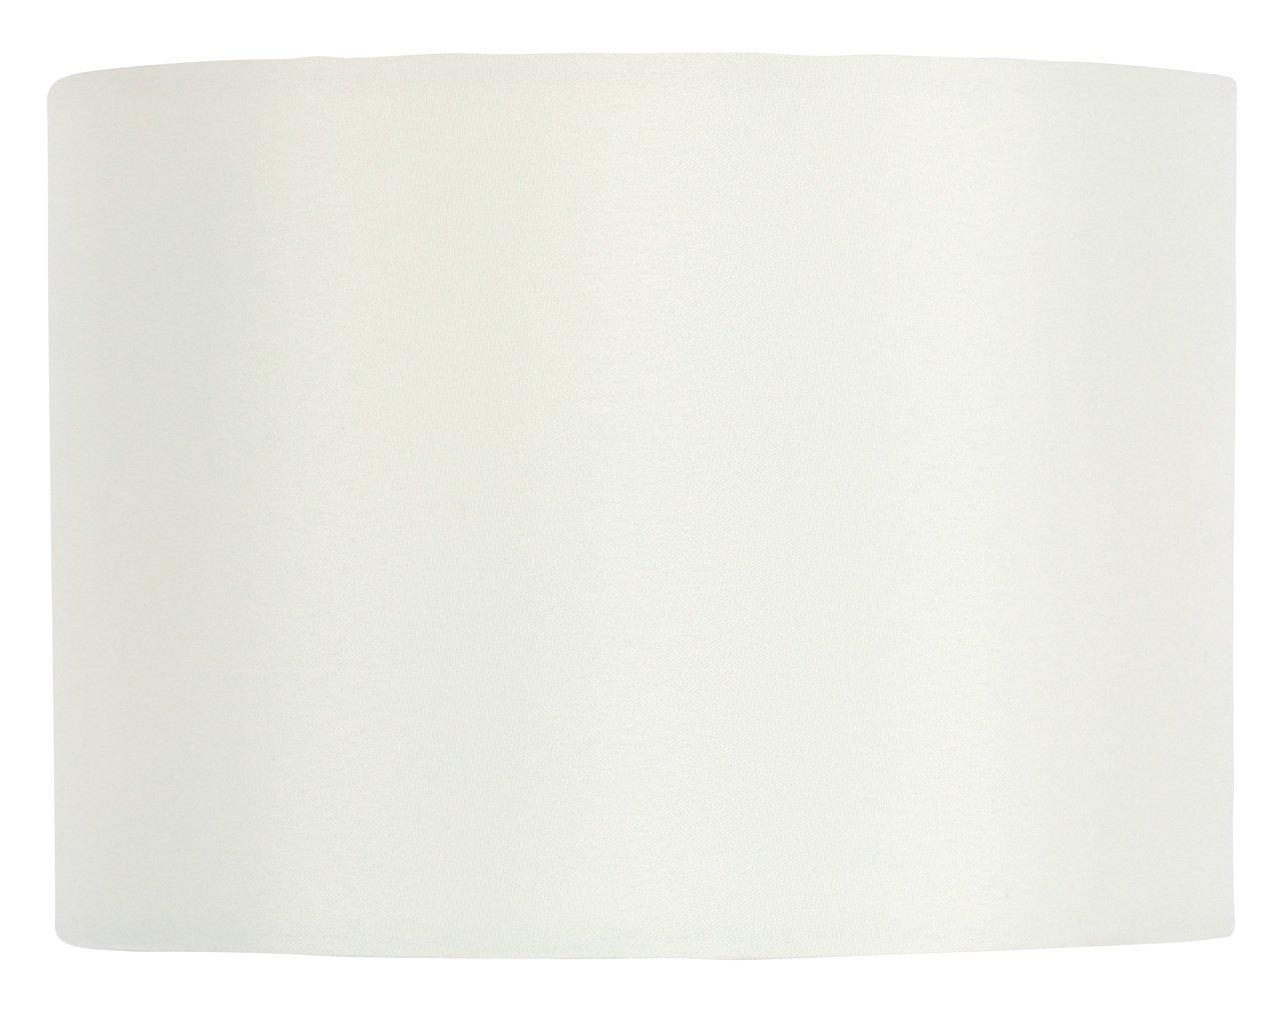 Upgradelights Wall Sconce Clip On Eggshell Shield Lamp Shade Chandelier  Shade   Wall Sconce Replacement Shade   Amazon.com